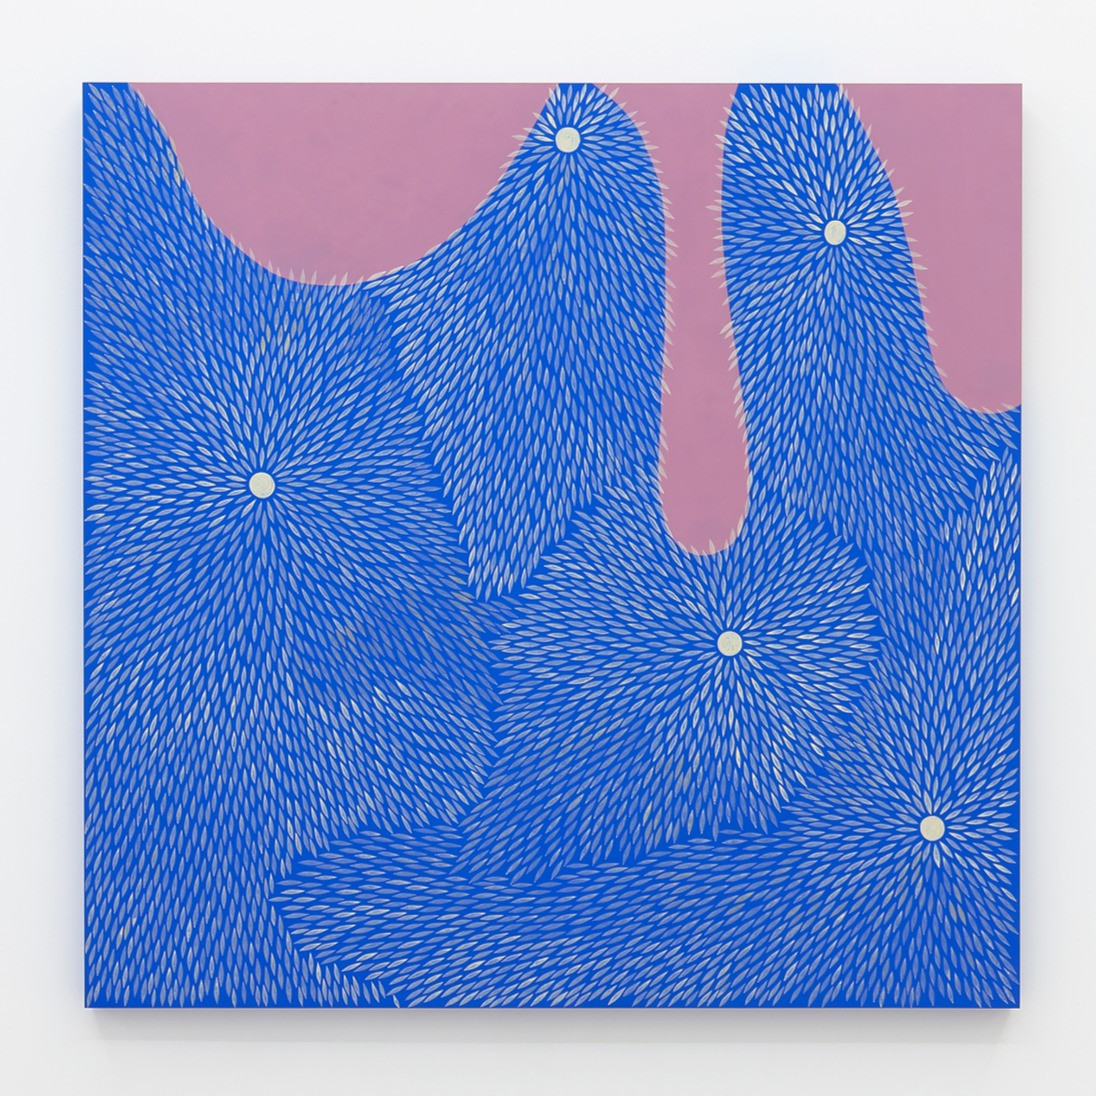 Julia Chiang  Lower Low, 2020   Acrylic on wood panel  48 x 48 inches